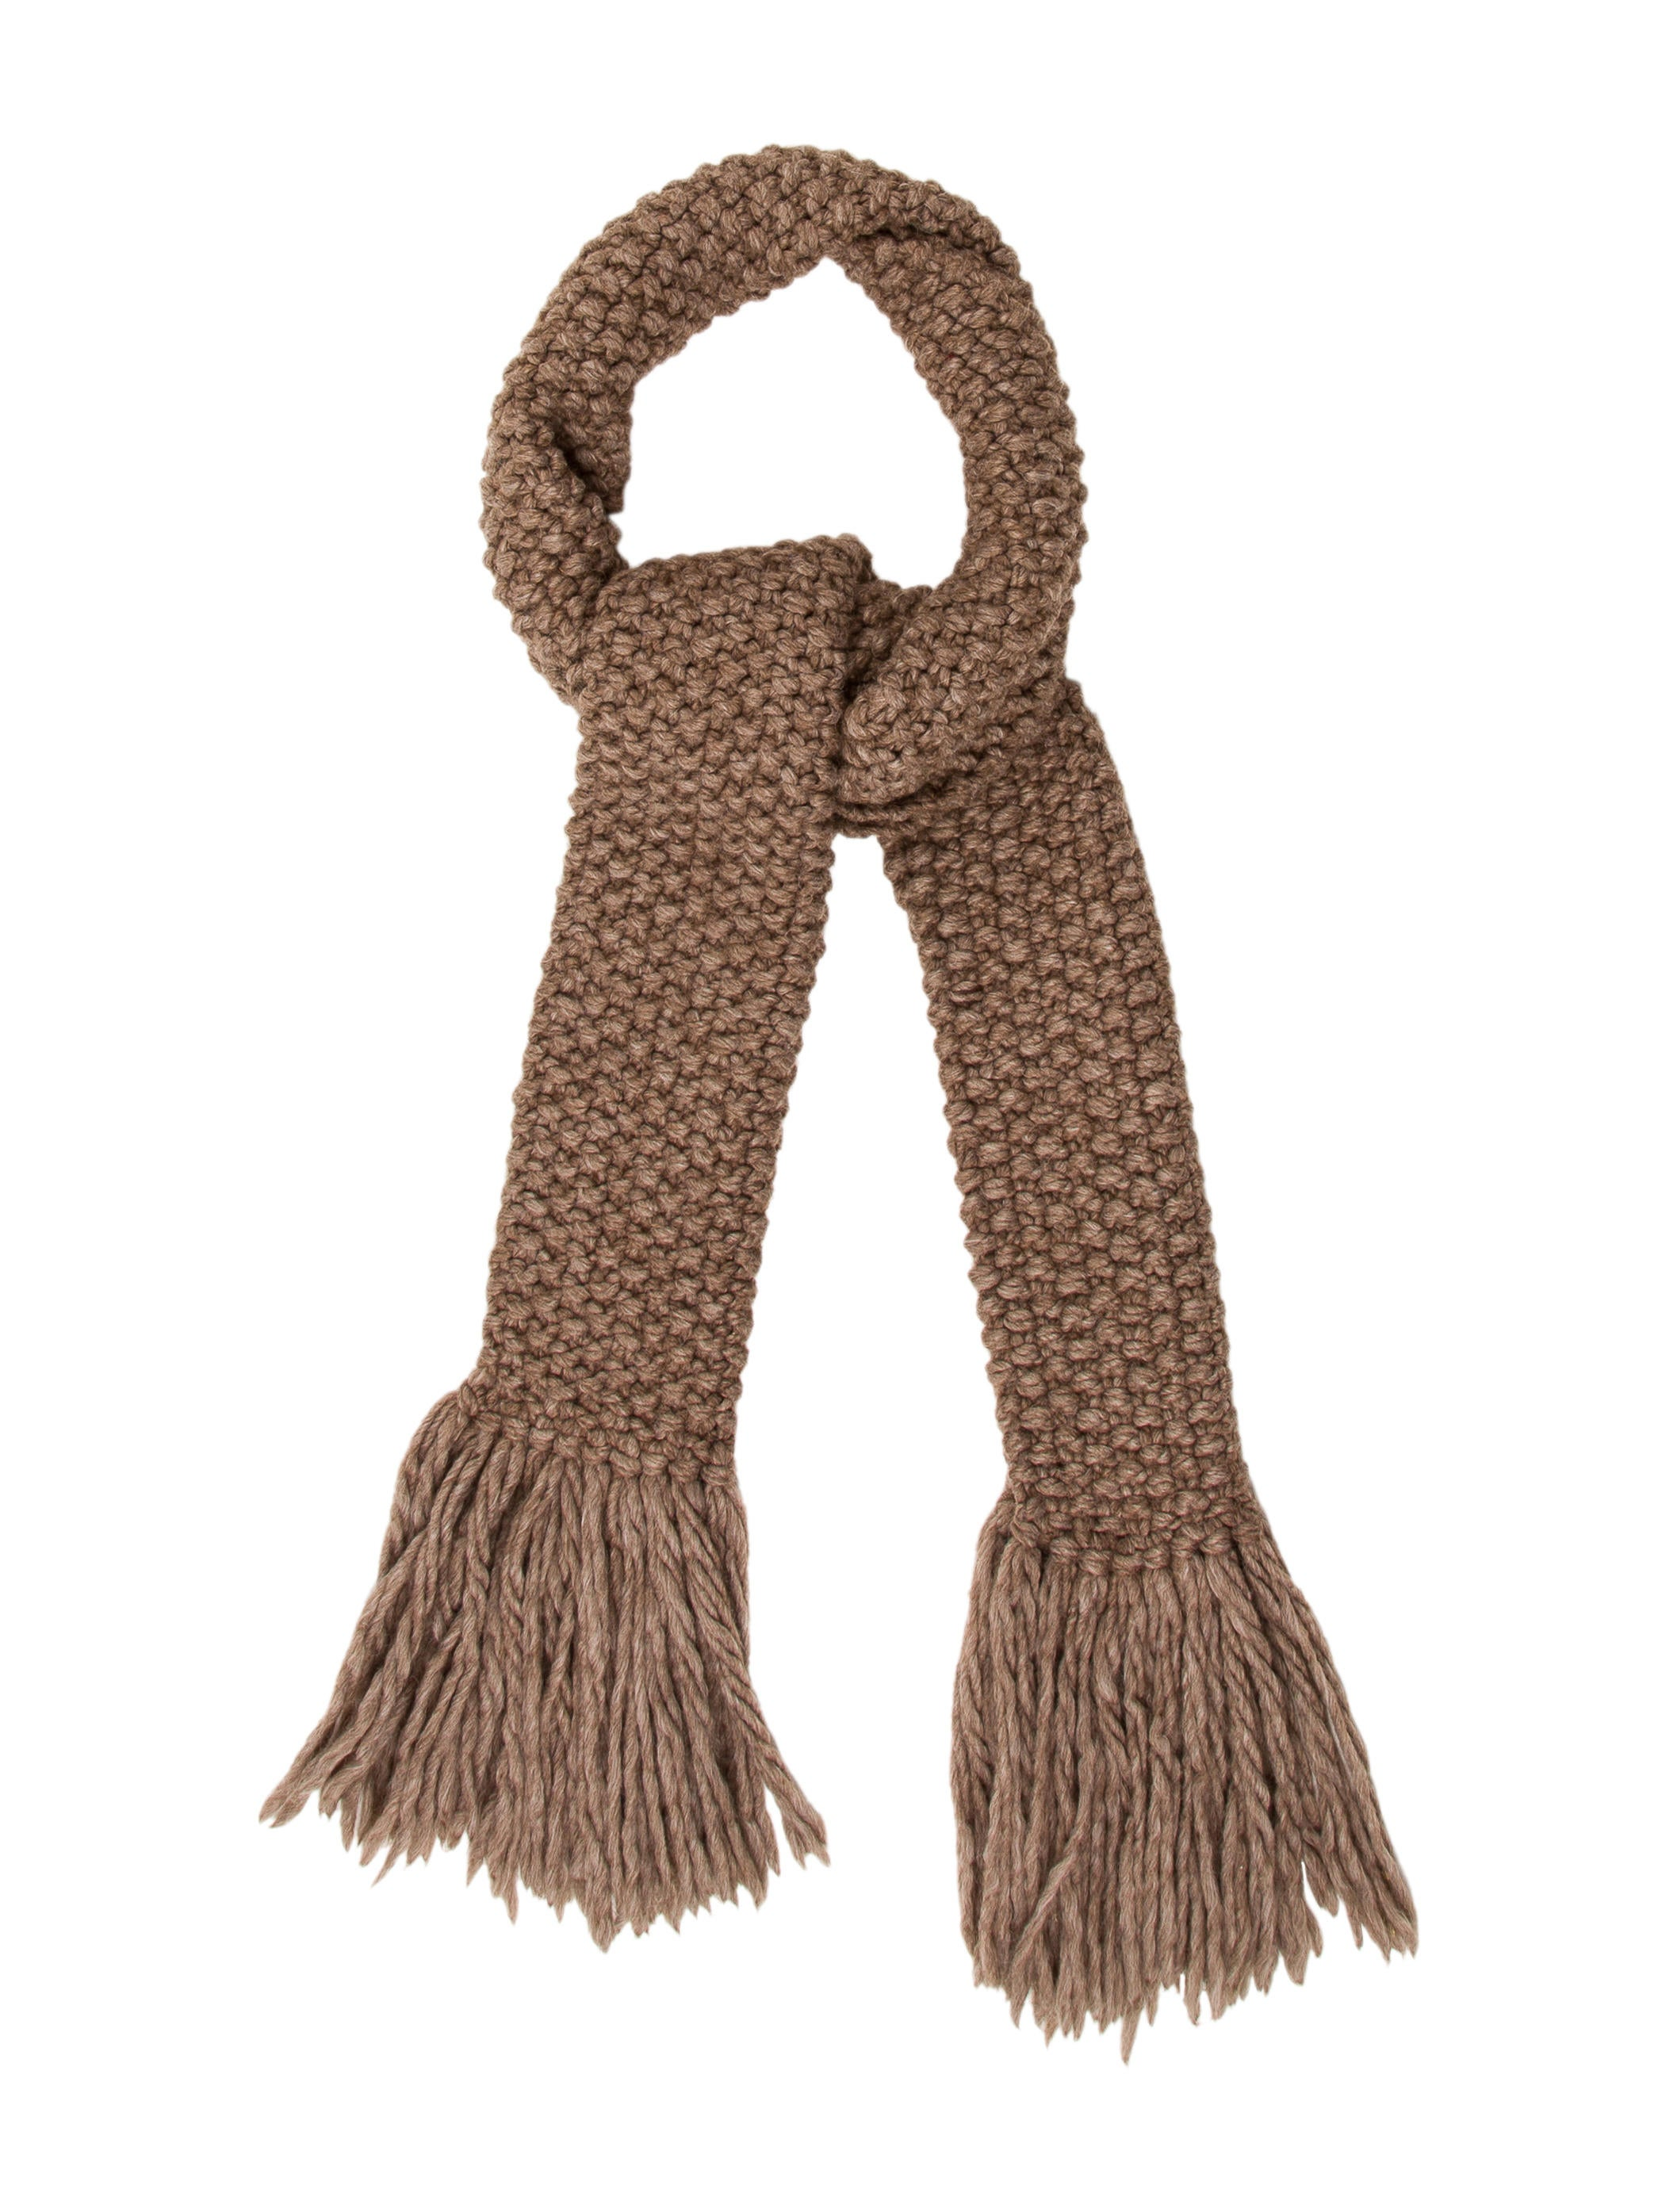 michael kors cable knit fringe scarf accessories